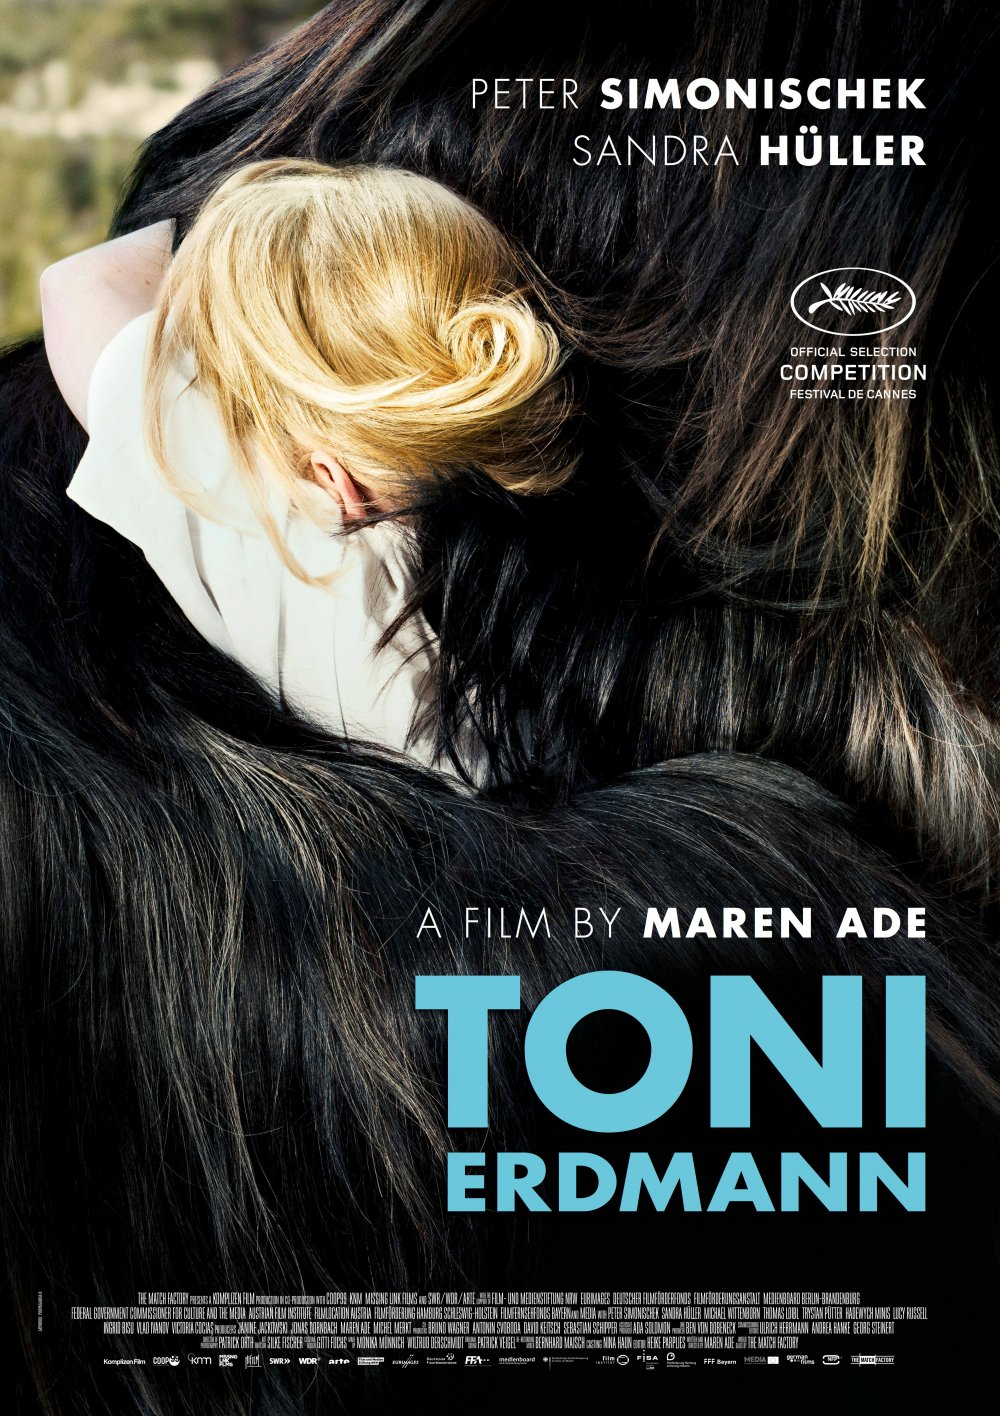 The Cannes festival poster for Toni Erdmann (2016)